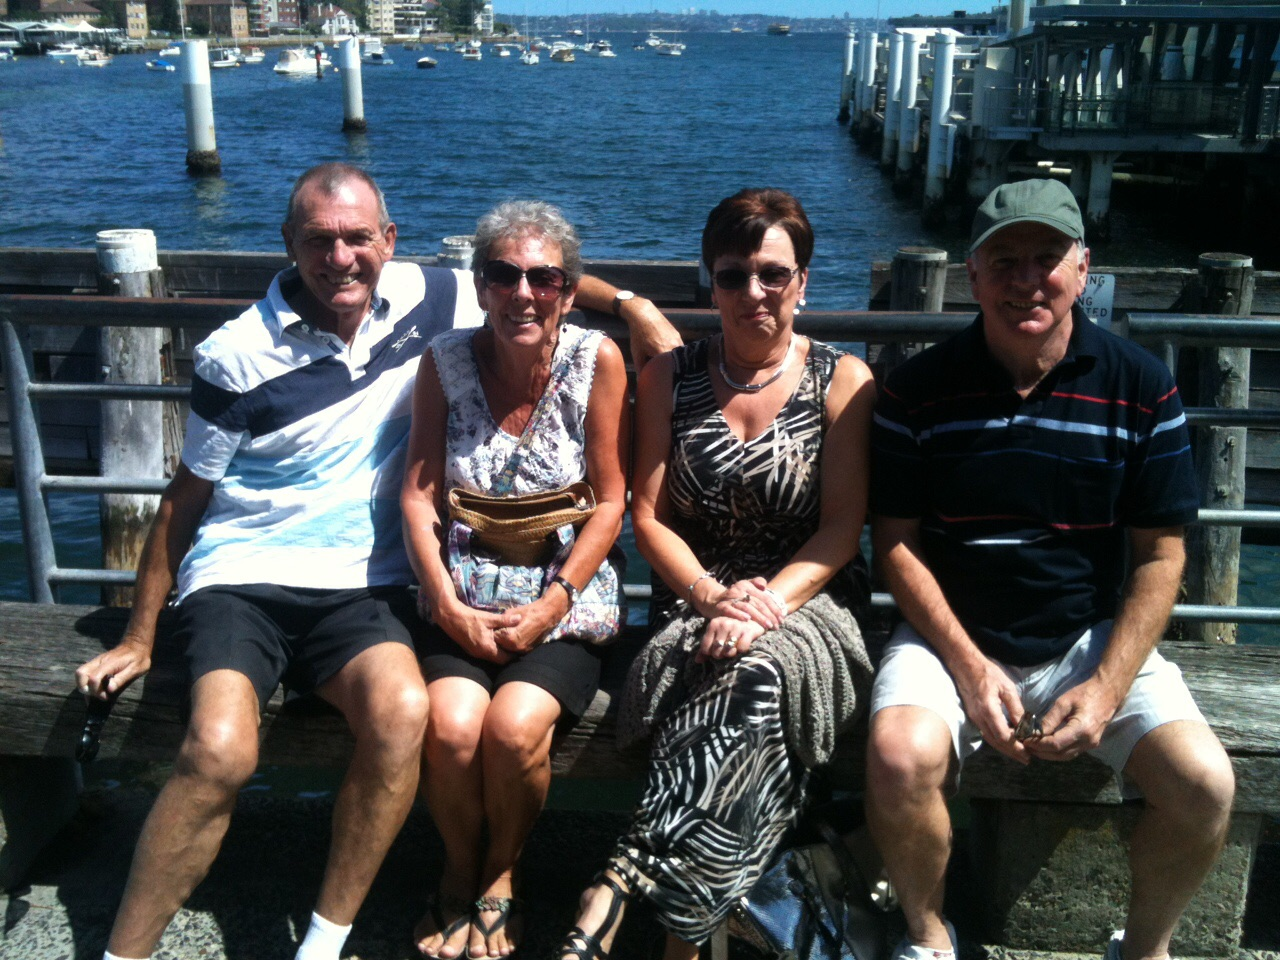 Babs & Sue, from Renhold Love to Dance, with their hubbies enjoying the sun down under